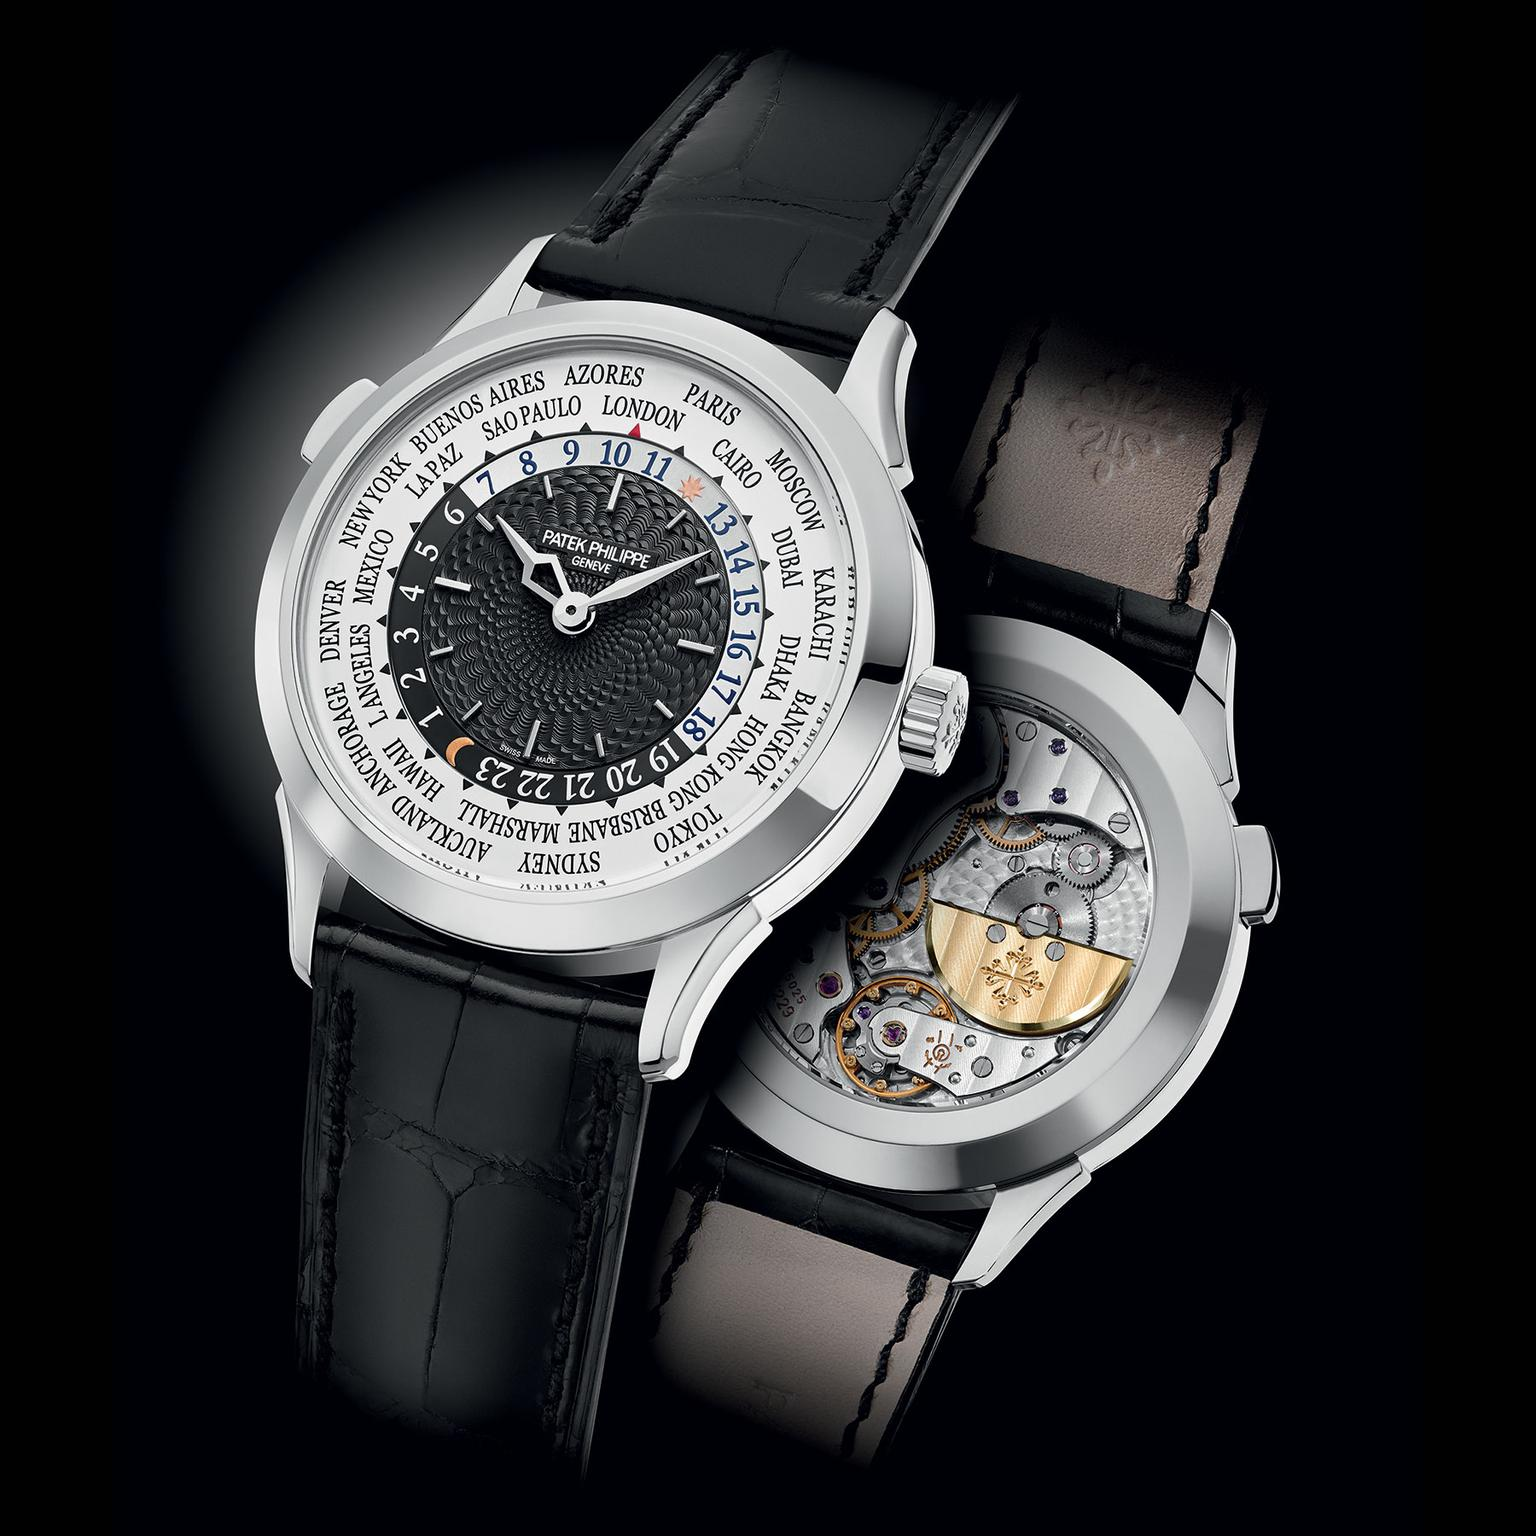 Patek Philippe Ref. 5230 watch